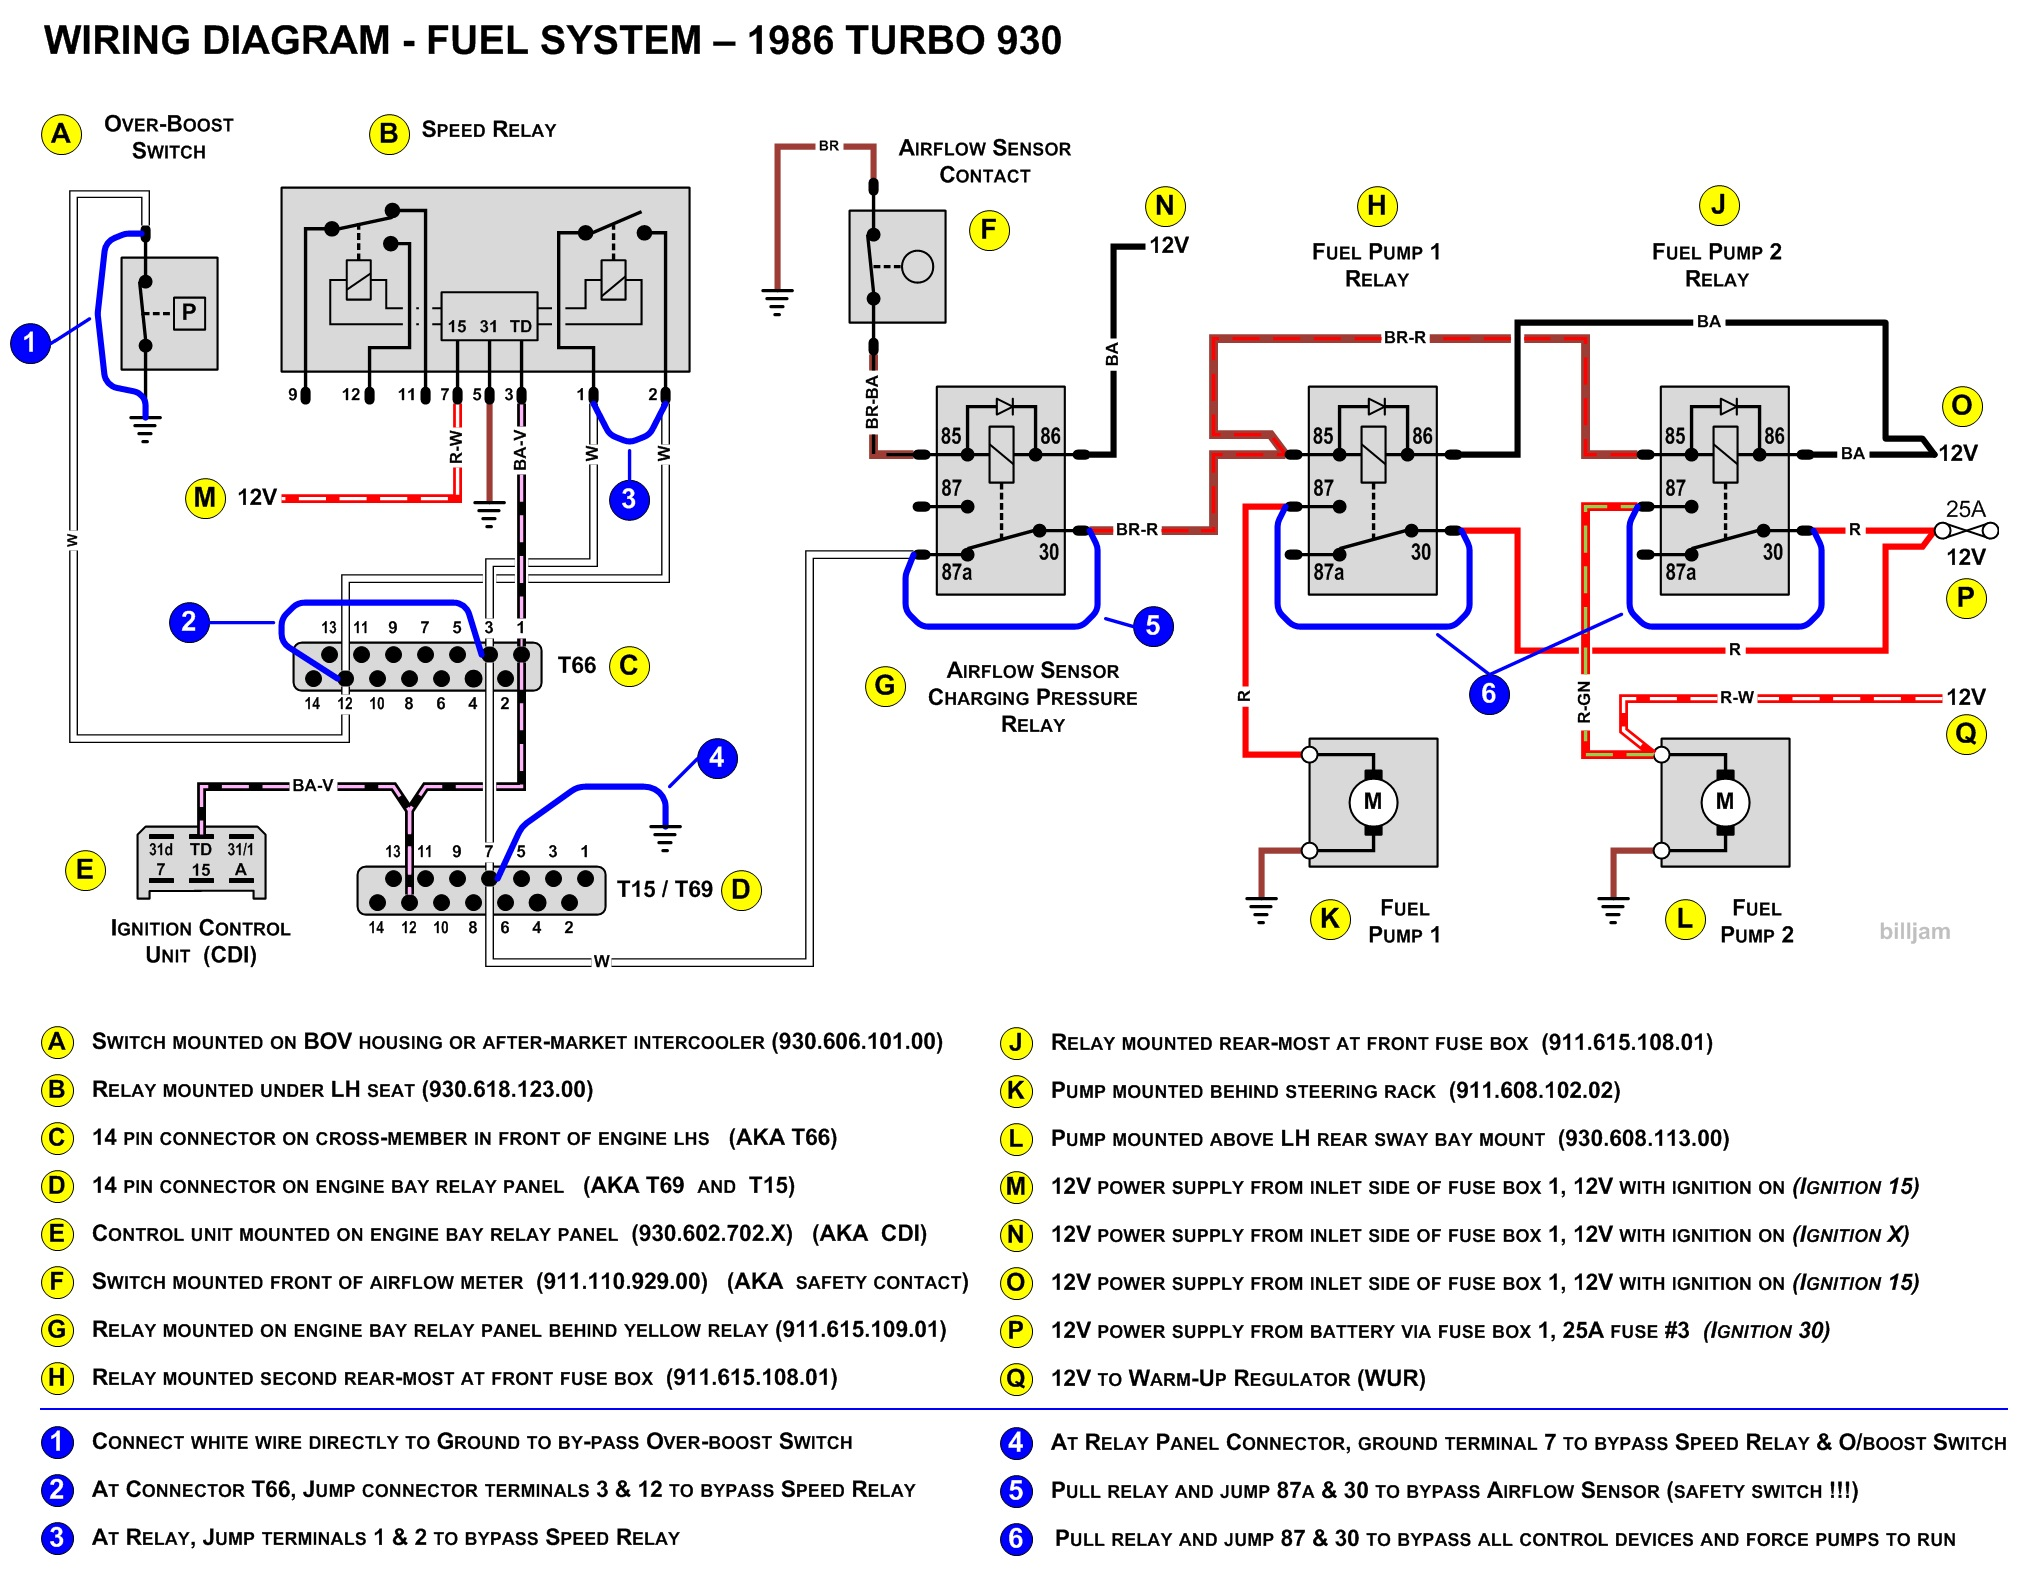 porsche wiring diagrams 911 with Porsche Cayenne Engine Diagram on 341855 Lets Play Name Vibration further Wiring Diagram 1988 Porsche 911 in addition Audi tt rs coupe  2012 furthermore 288567 Power Window Switch Schematic moreover 996 Coolant Flow Diagram.